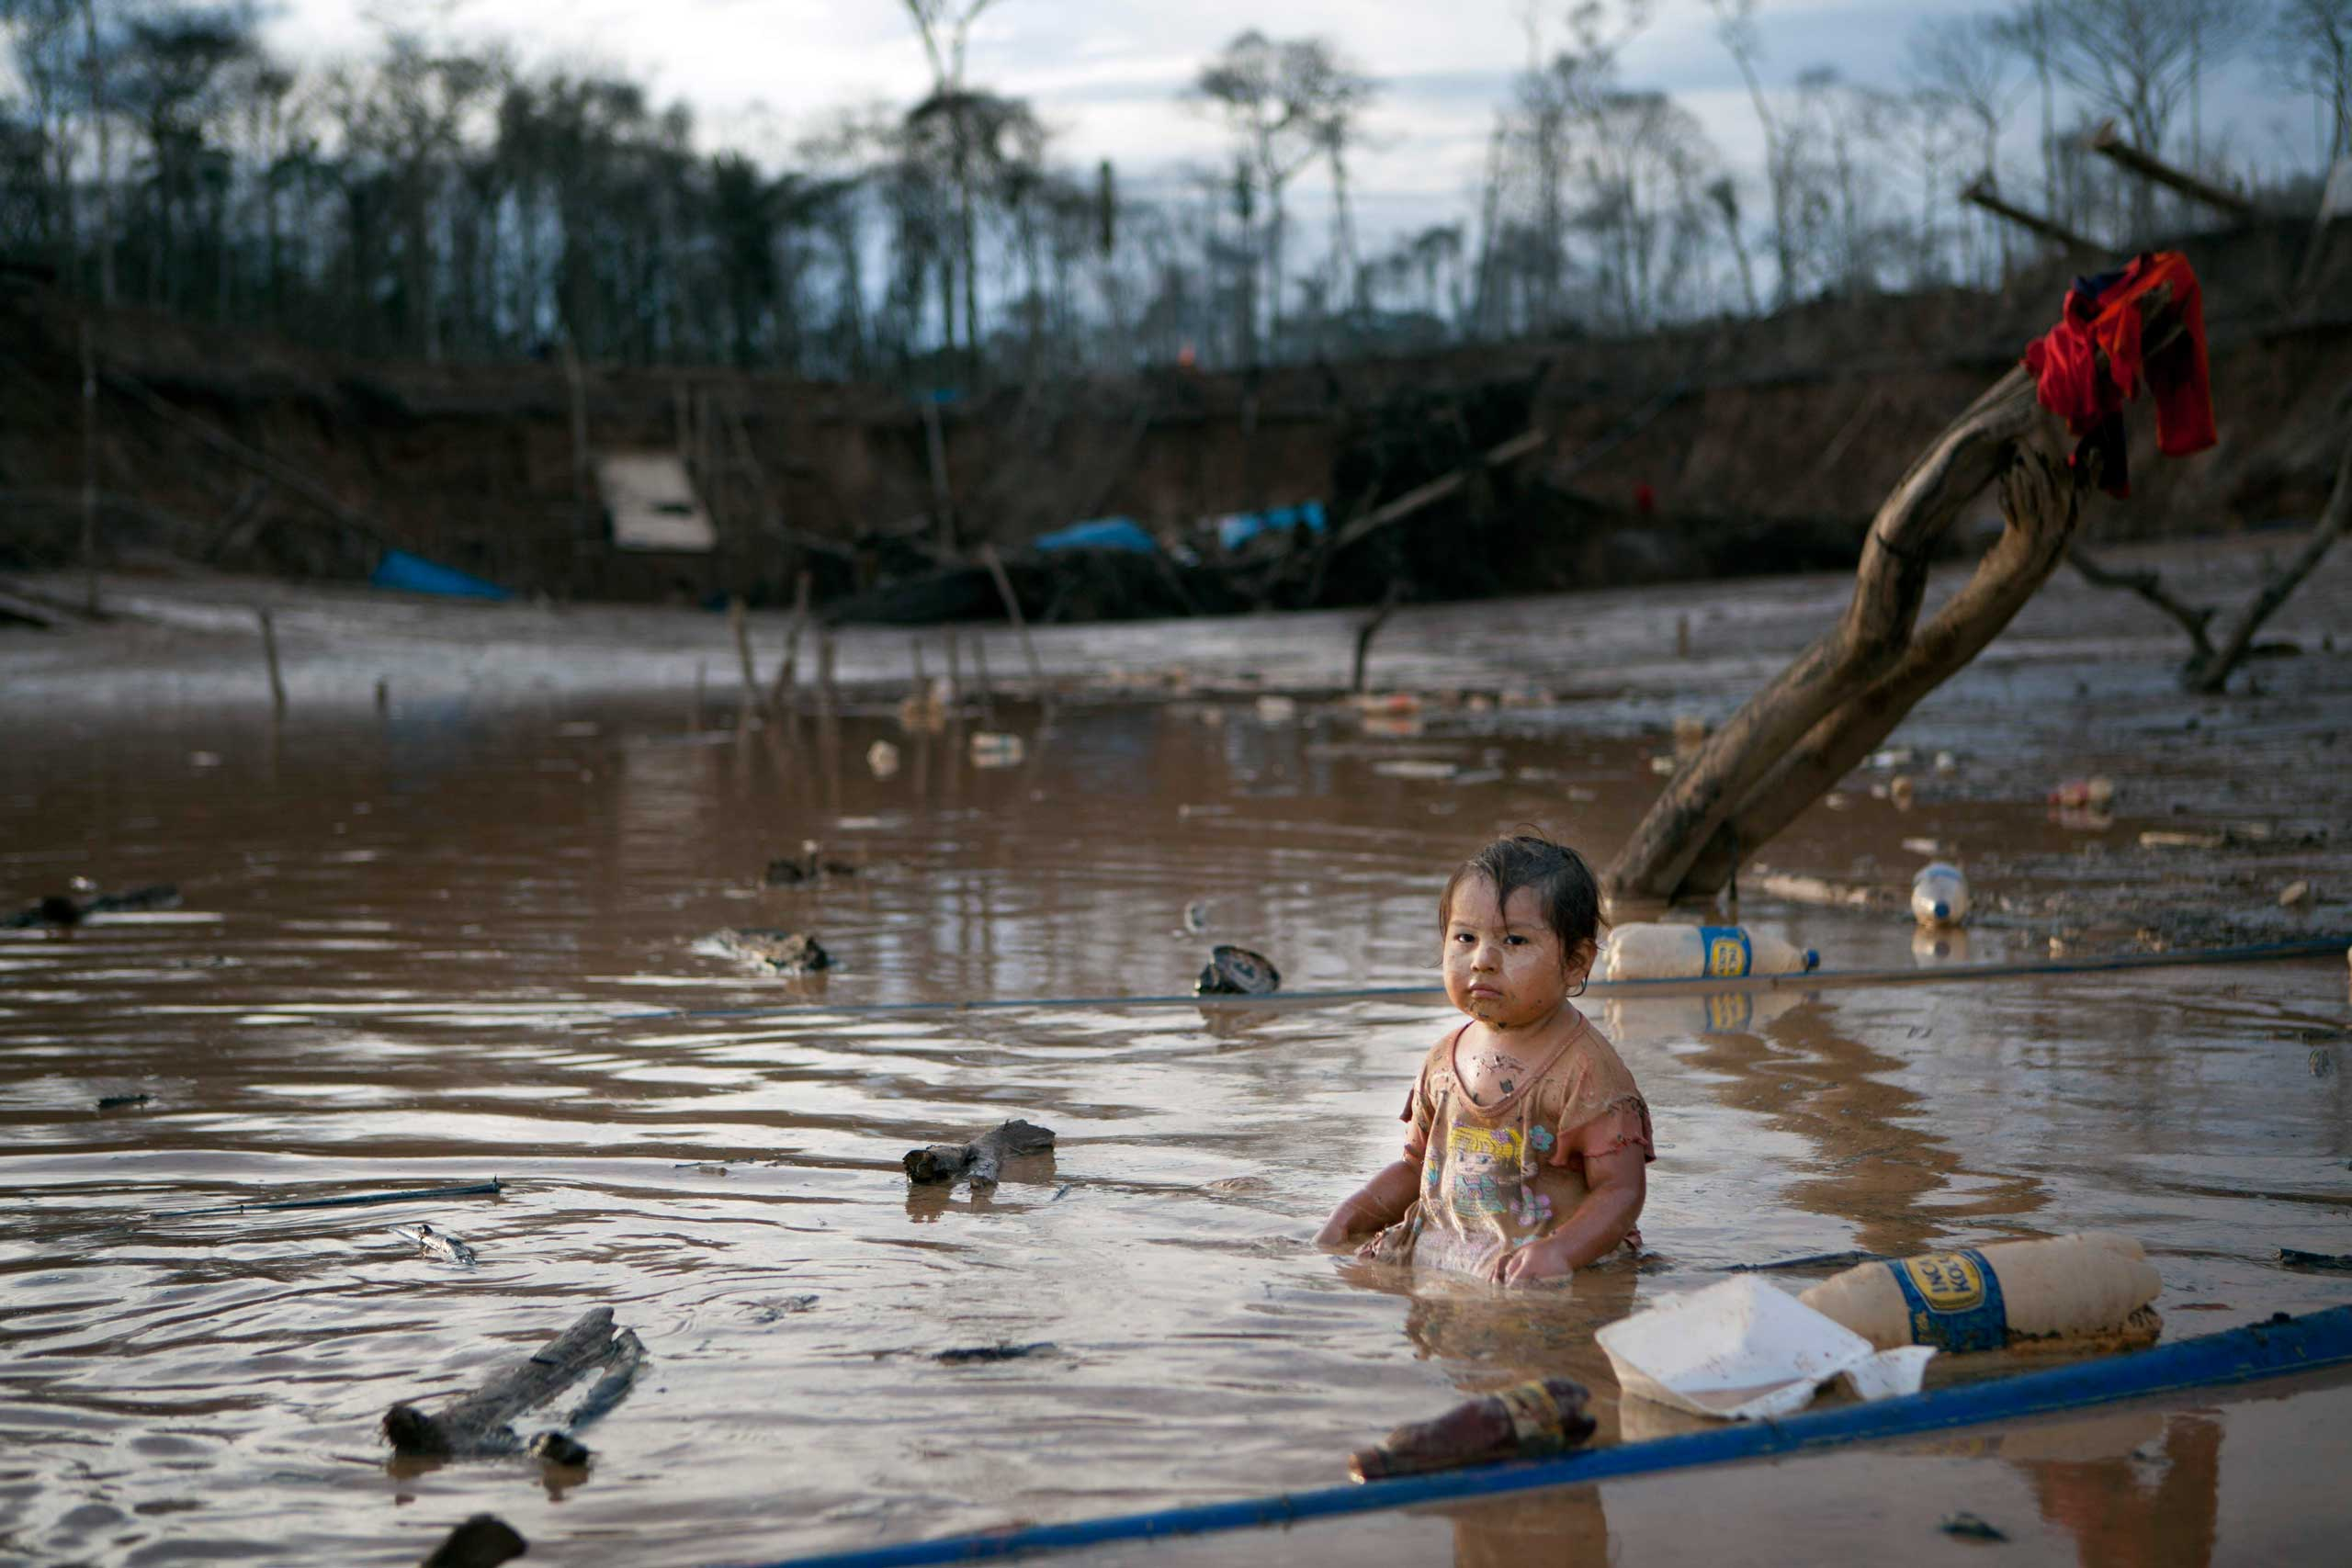 Prisaida, 2, sits in the shallow waters of a polluted lagoon as her parents mine for gold nearby in La Pampa in Peru's Madre de Dios region, May 3, 2014.